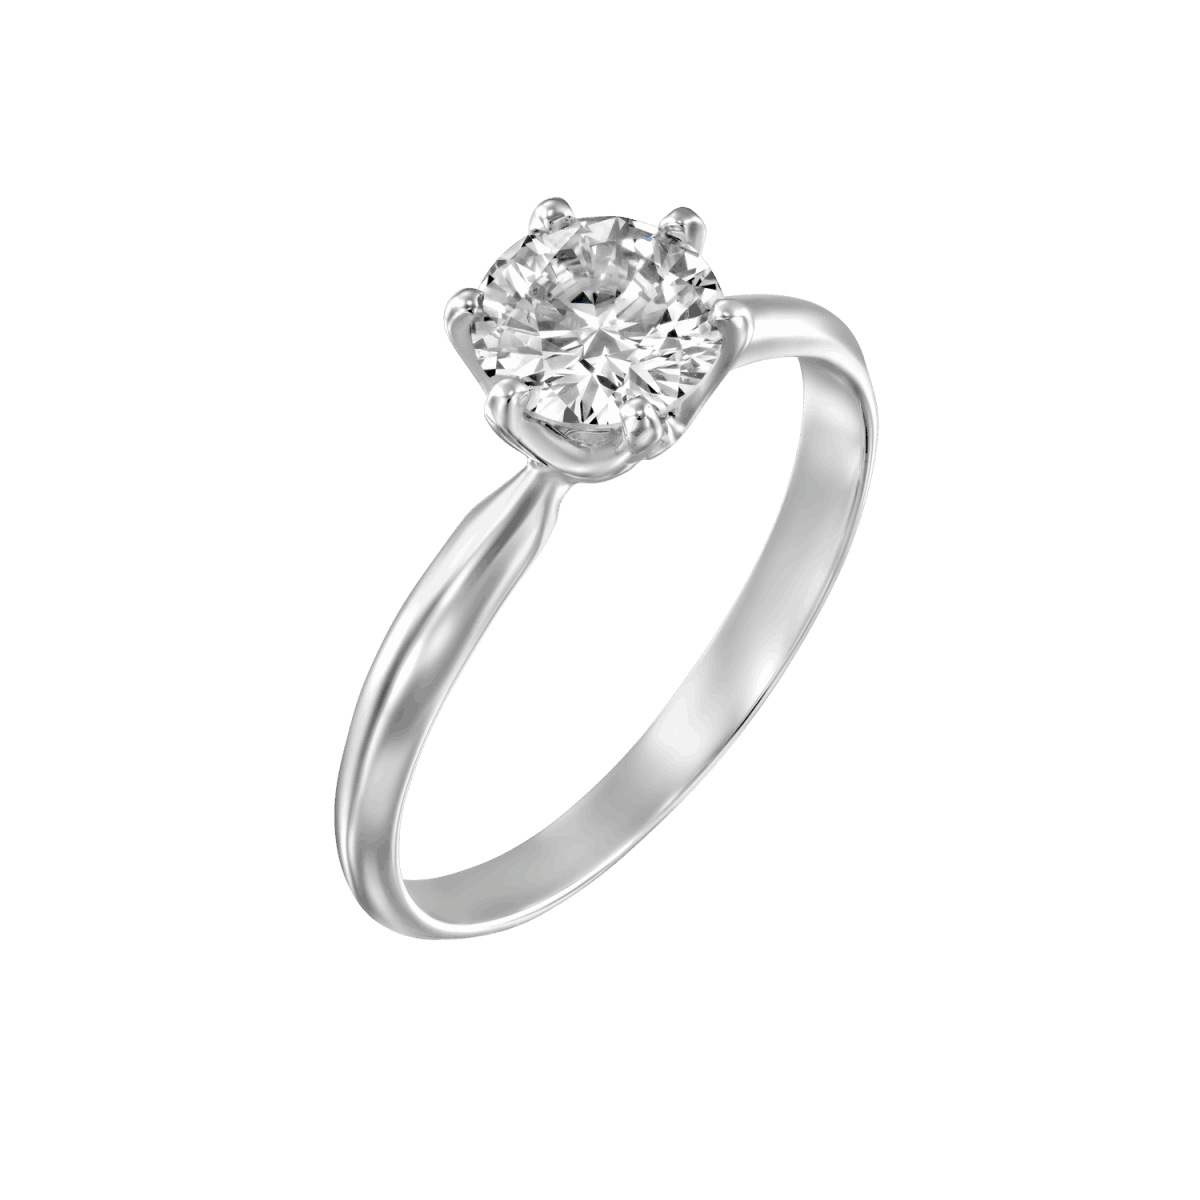 """""""Claire"""" - White Gold Lab Grown Diamond Engagement Ring 0.75ct. - main"""